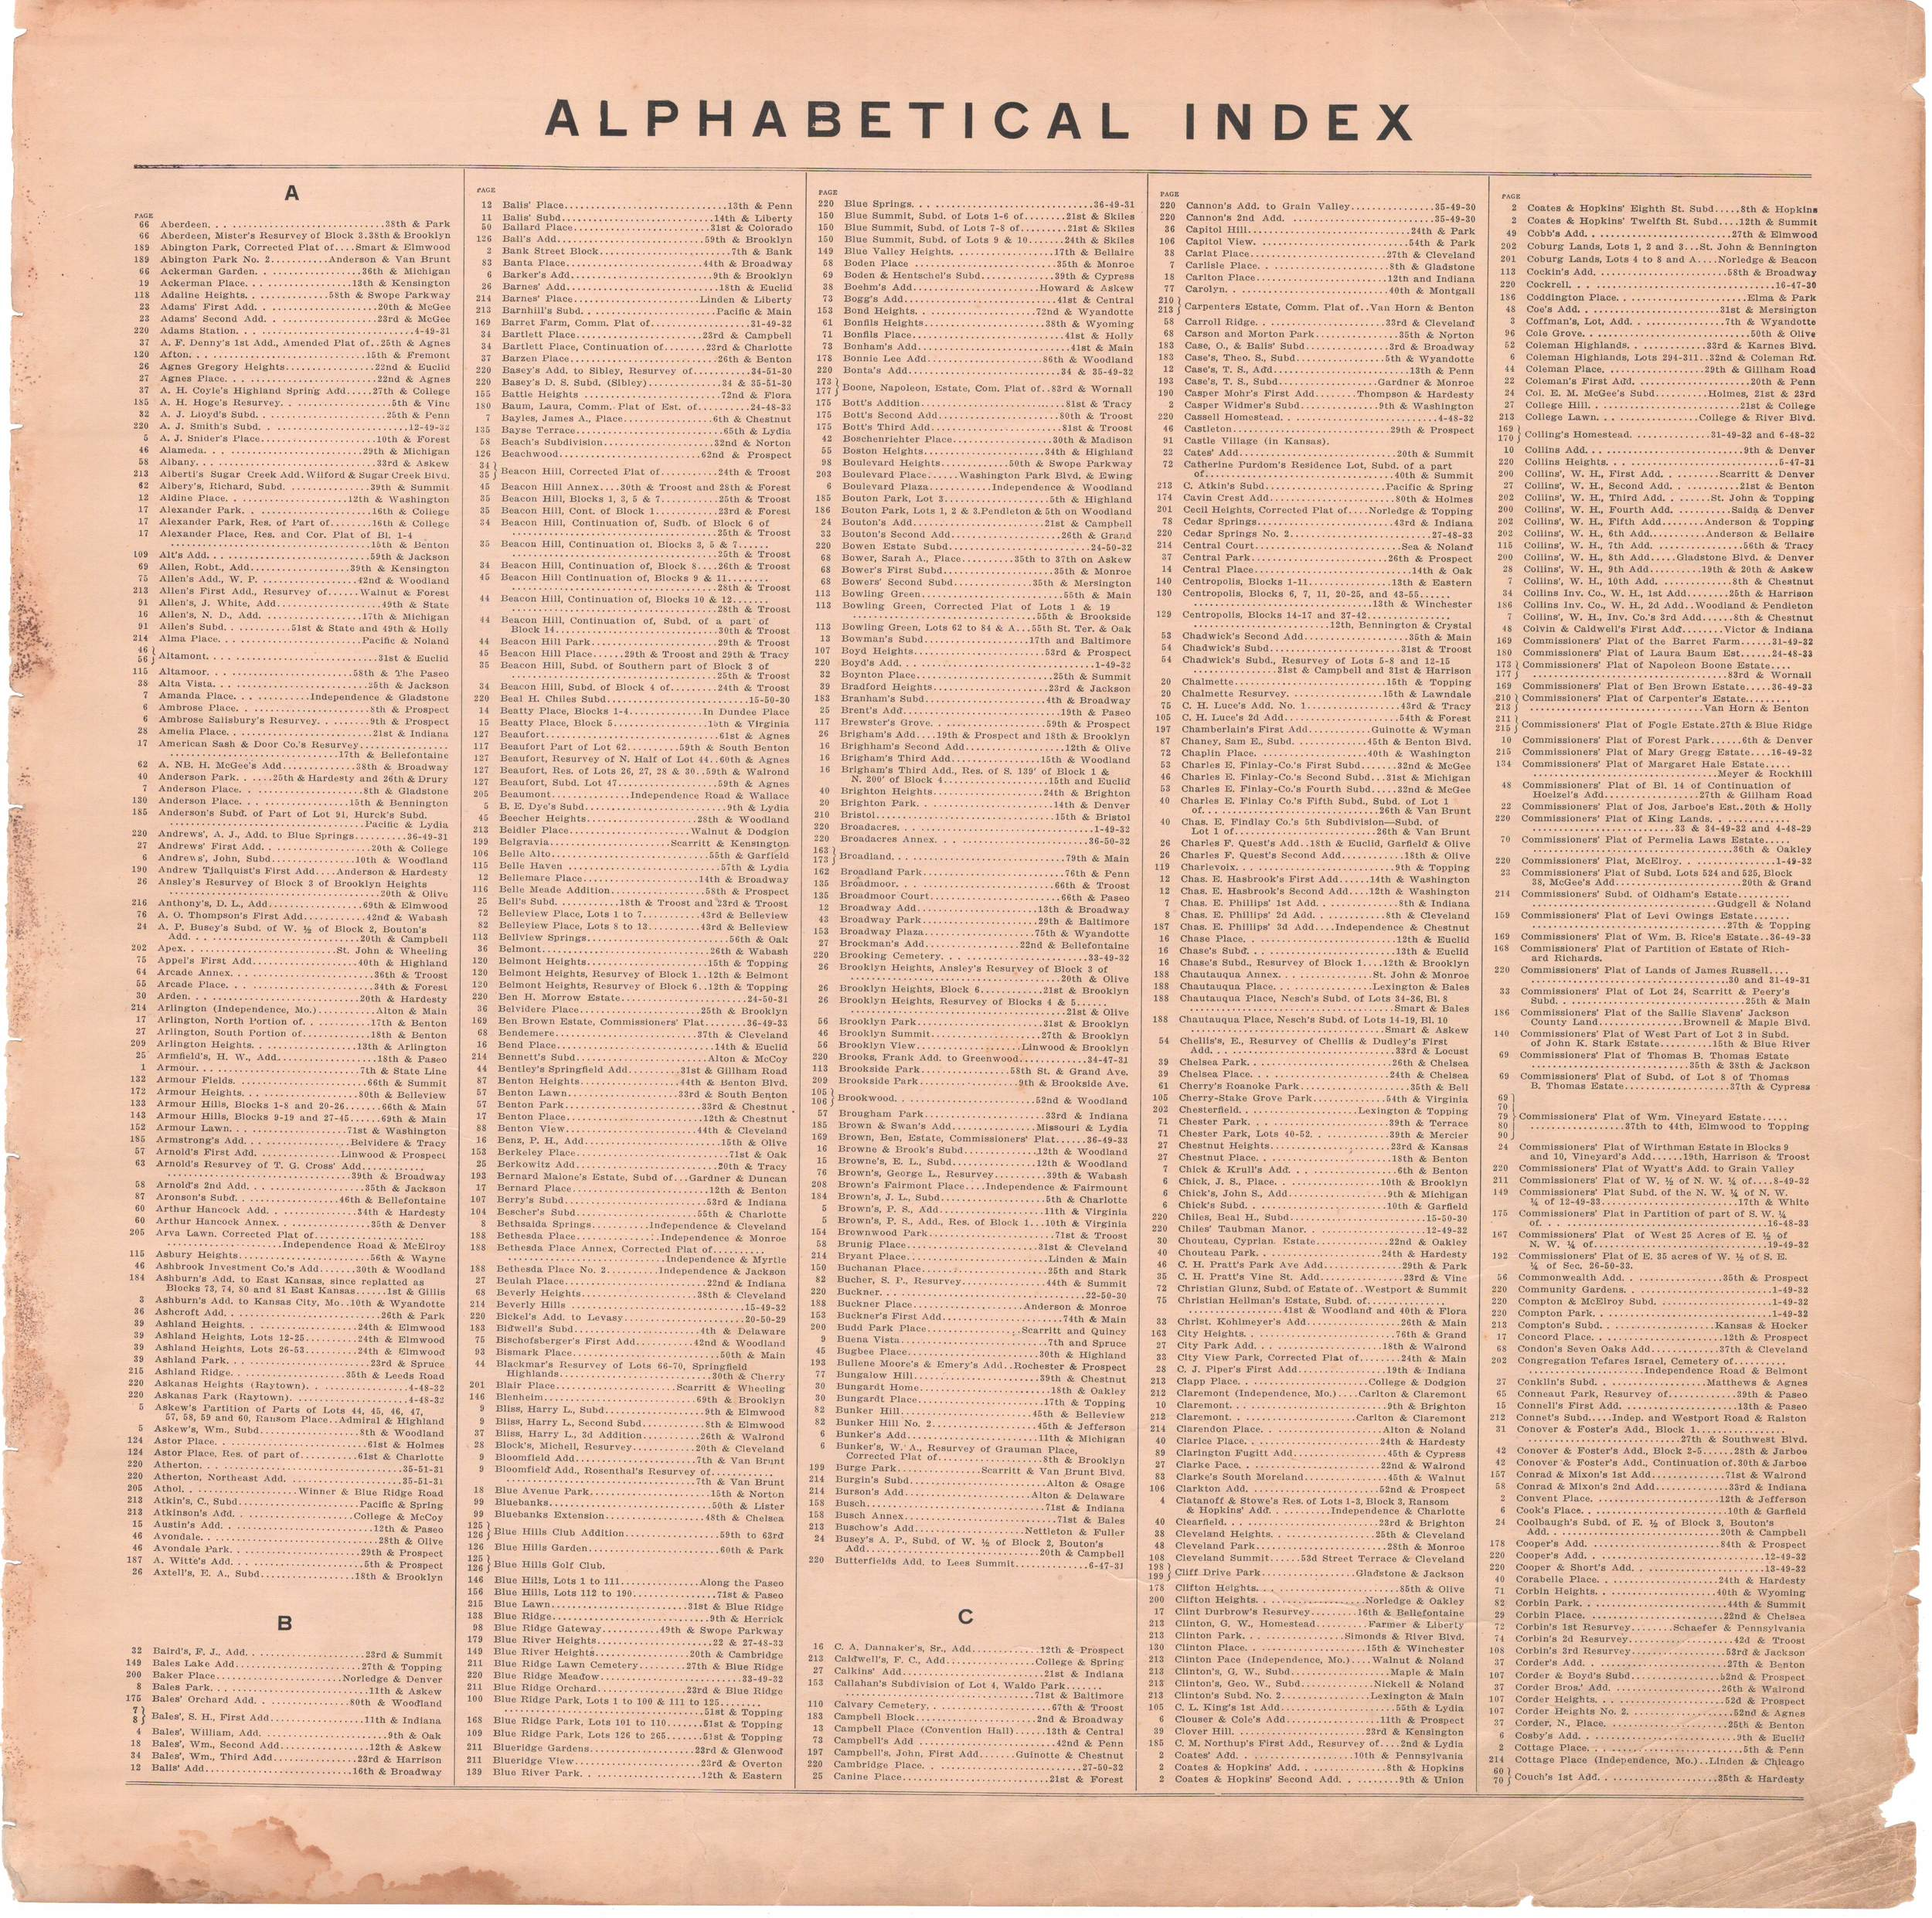 1925 TUTTLE_AYERS_Index_A-C.JPG